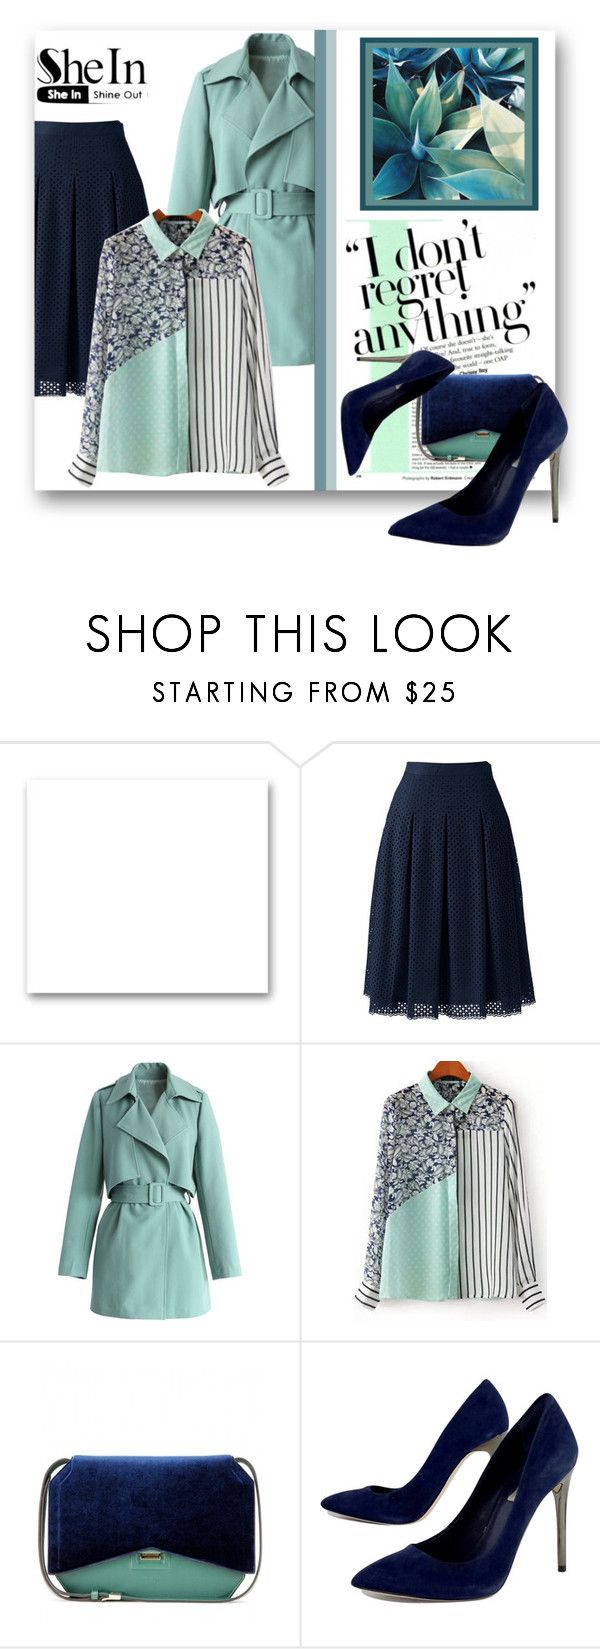 """""""SheIn-Green Blouse"""" by samketina ❤ liked on Polyvore featuring St. John, Lands' End, Chicwish, Givenchy, BCBGMAXAZRIA, women's clothing, women, female, woman and misses"""